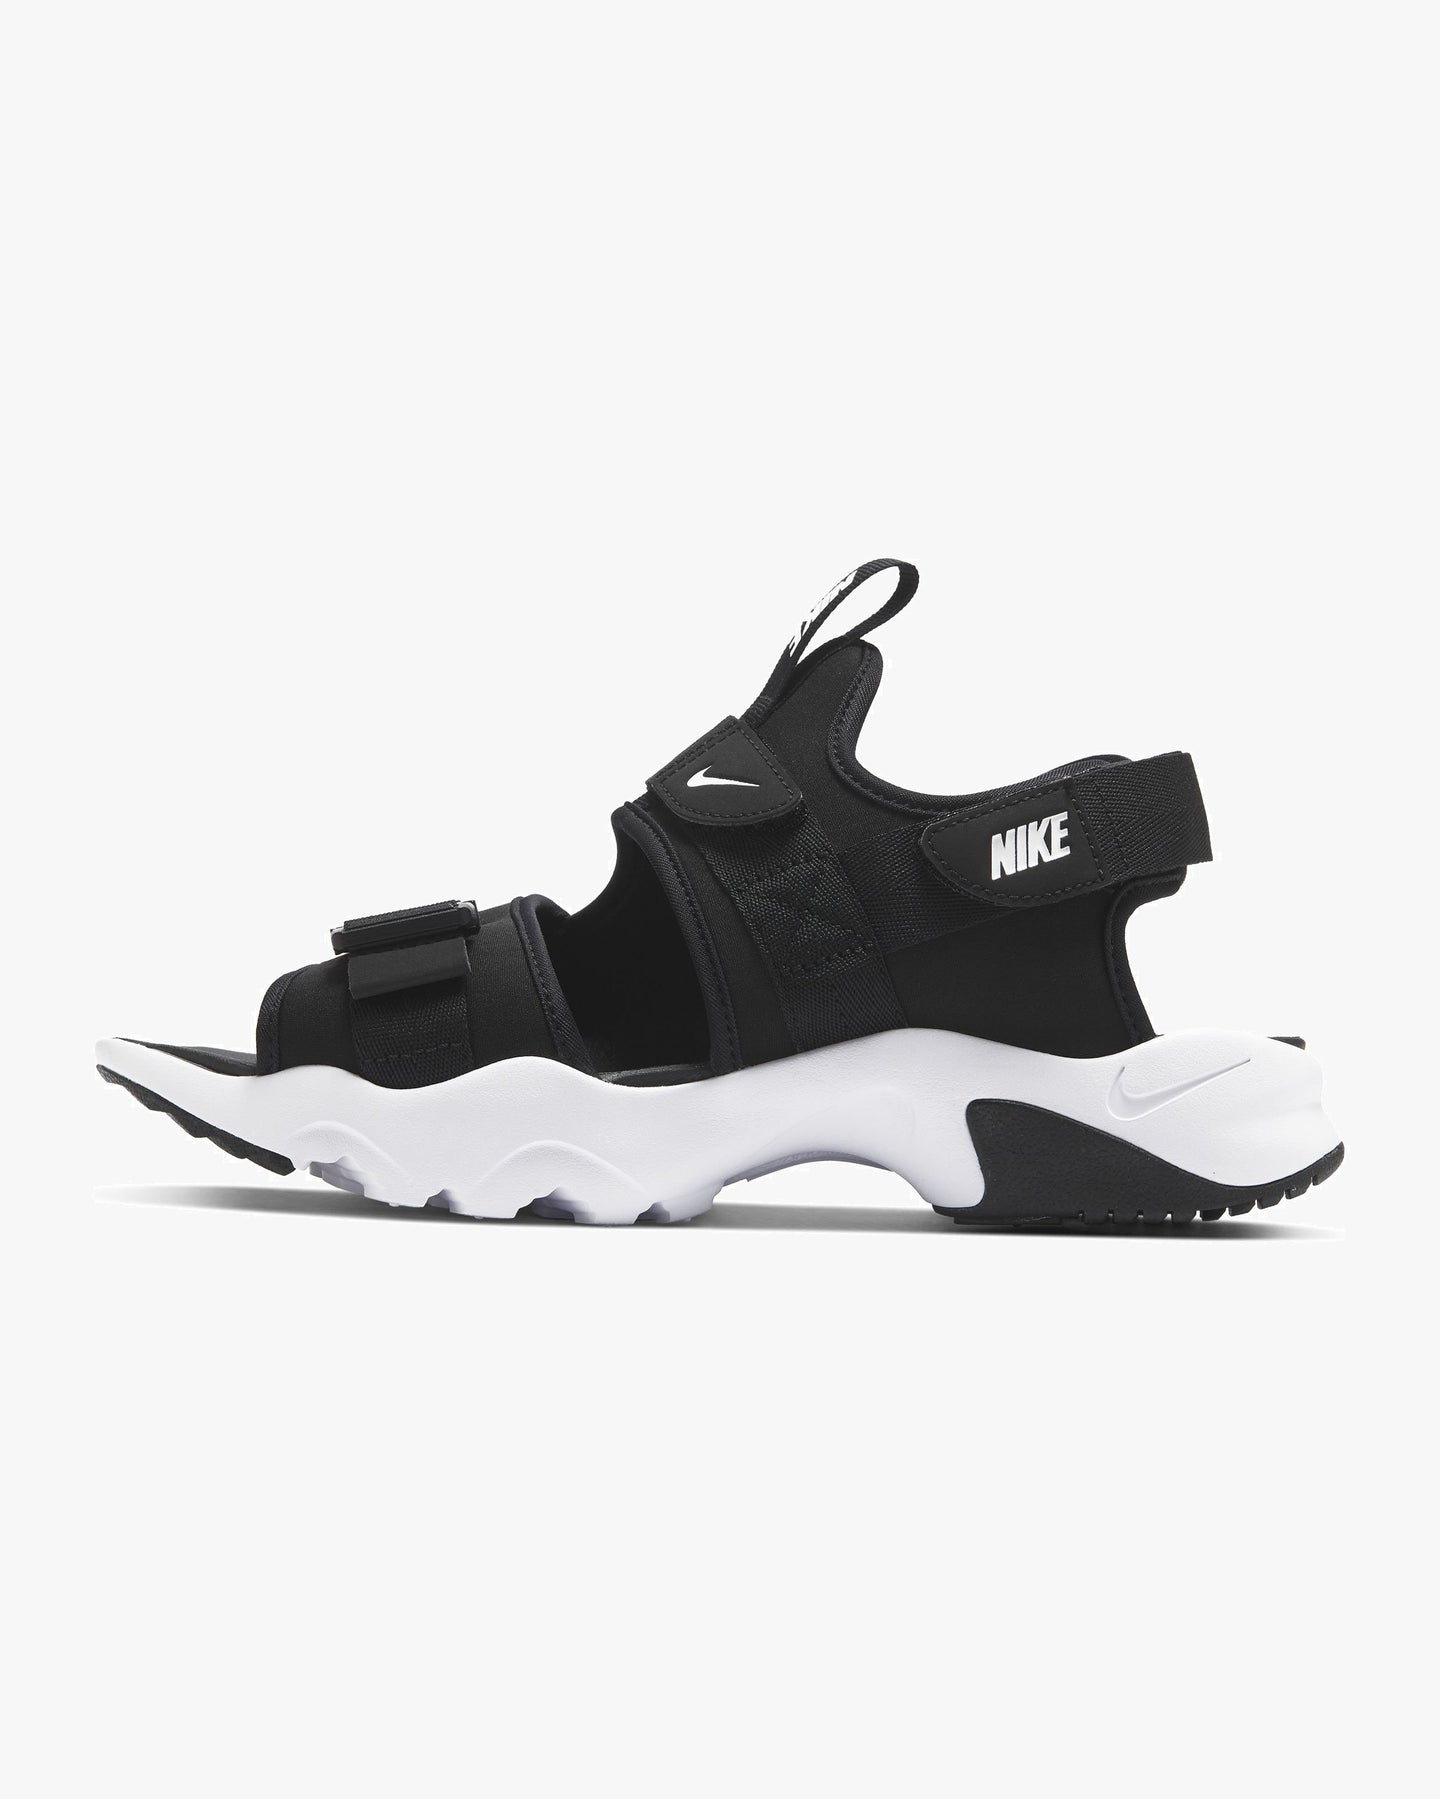 Nike Canyon Sandal - Black / White UK 7 CI8797-0027 193658083034 Nike Flip Flops & Sliders